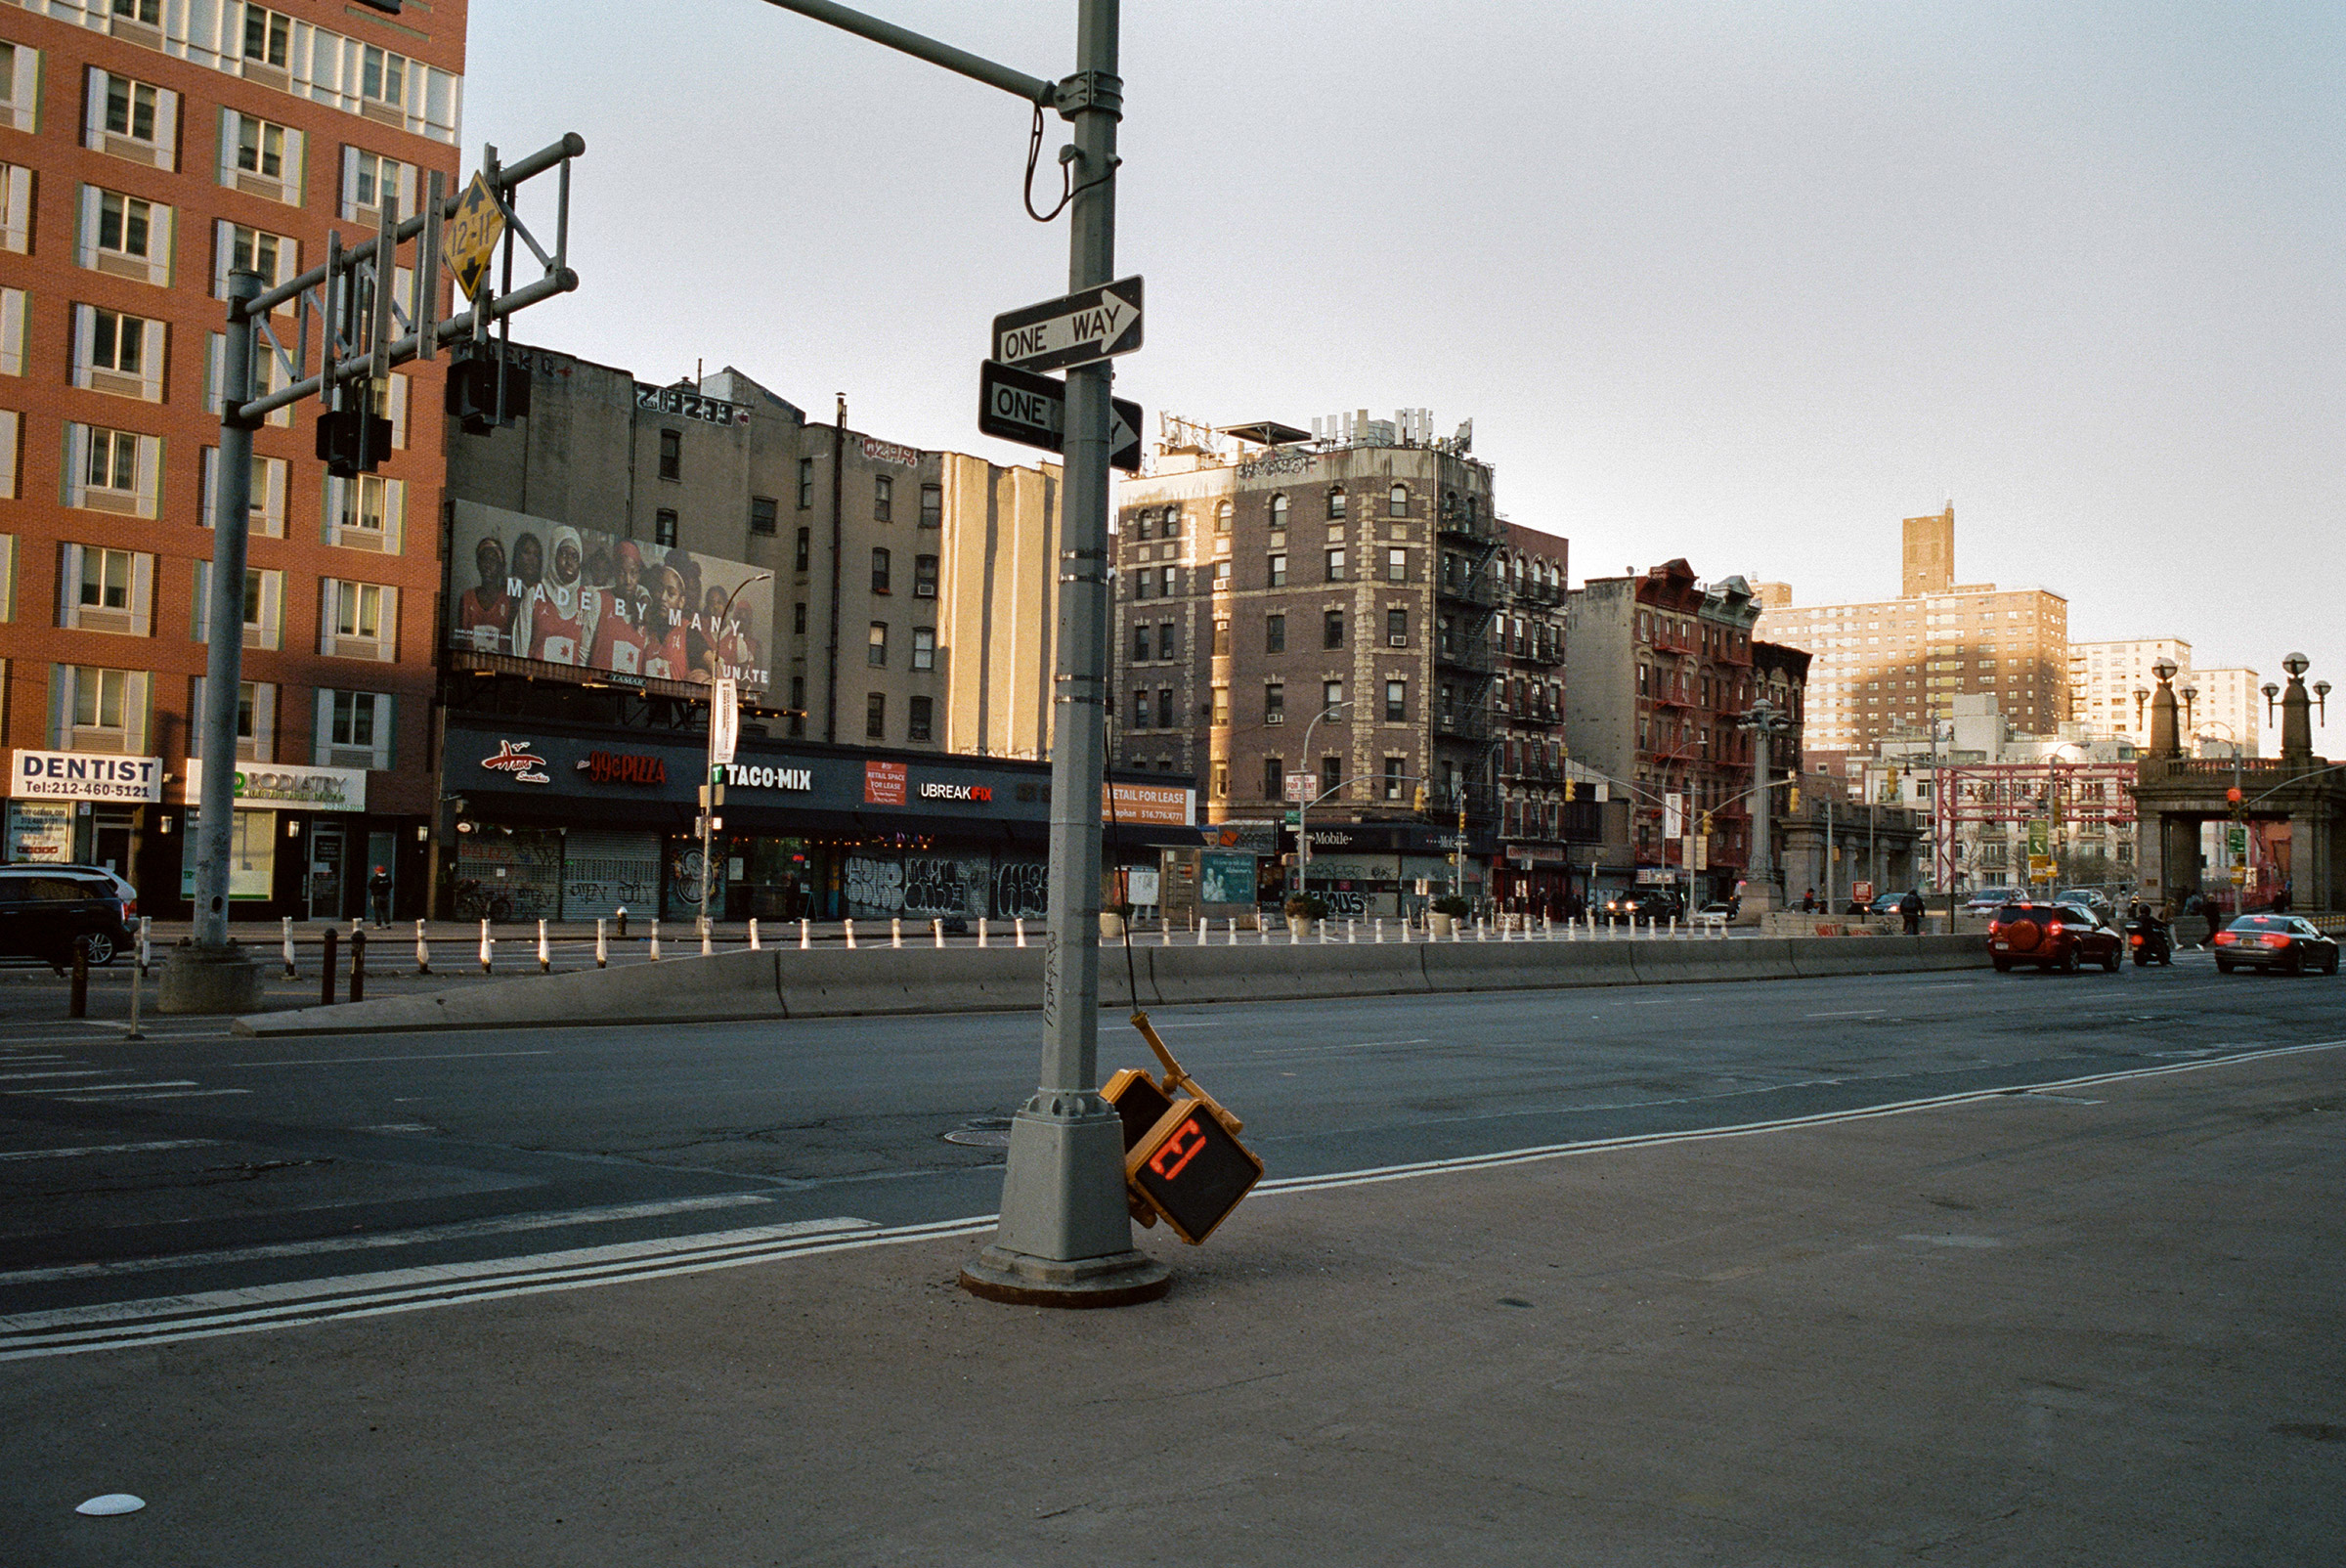 A broken streetlight flashes an ominous message on a deserted Delancey Street during the COVID-19 lockdown on April 14, 2020.